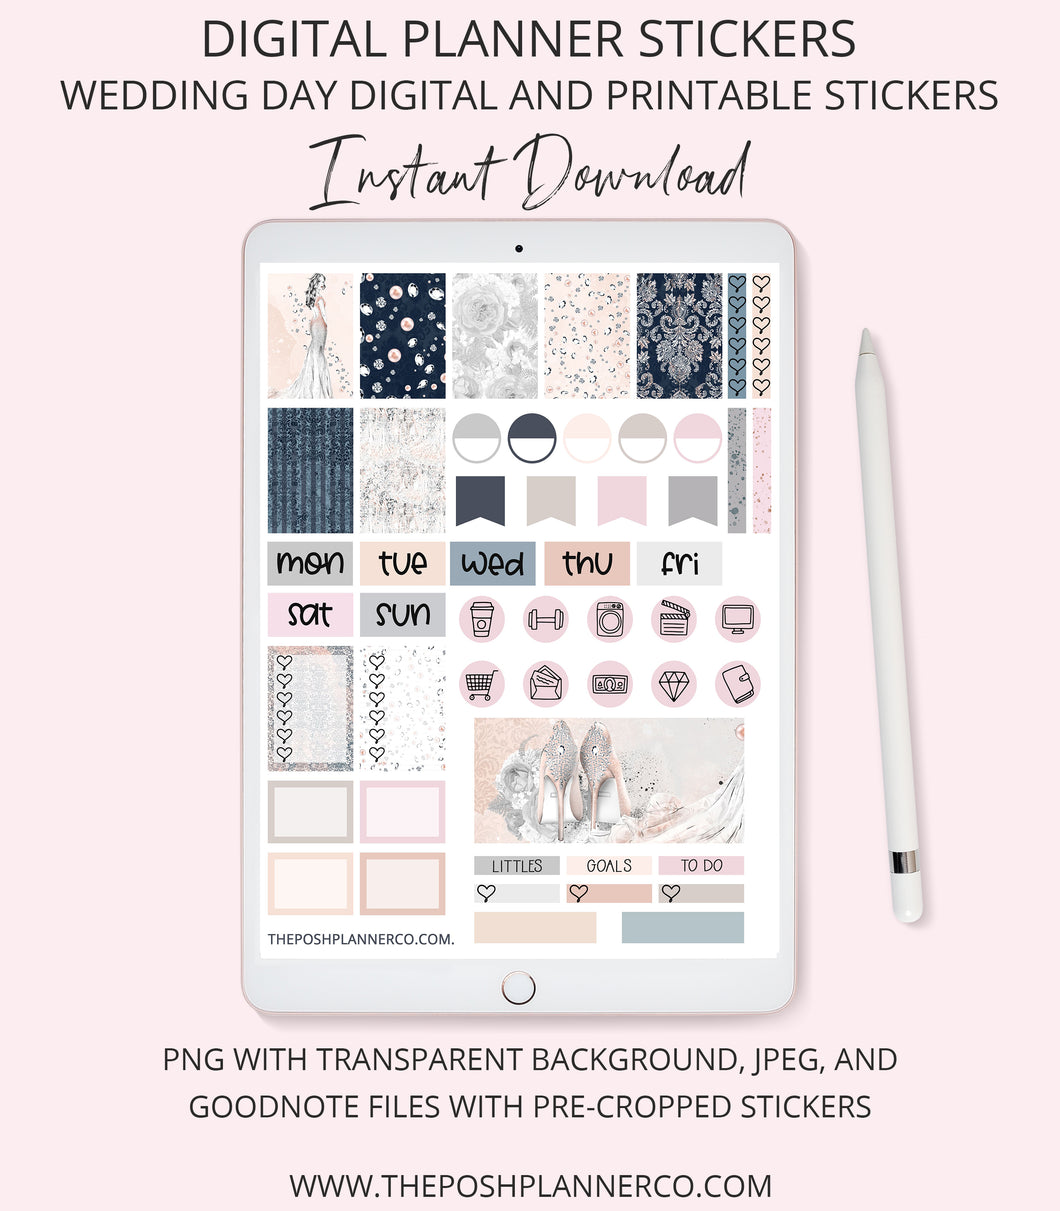 wedding digital planner stickers